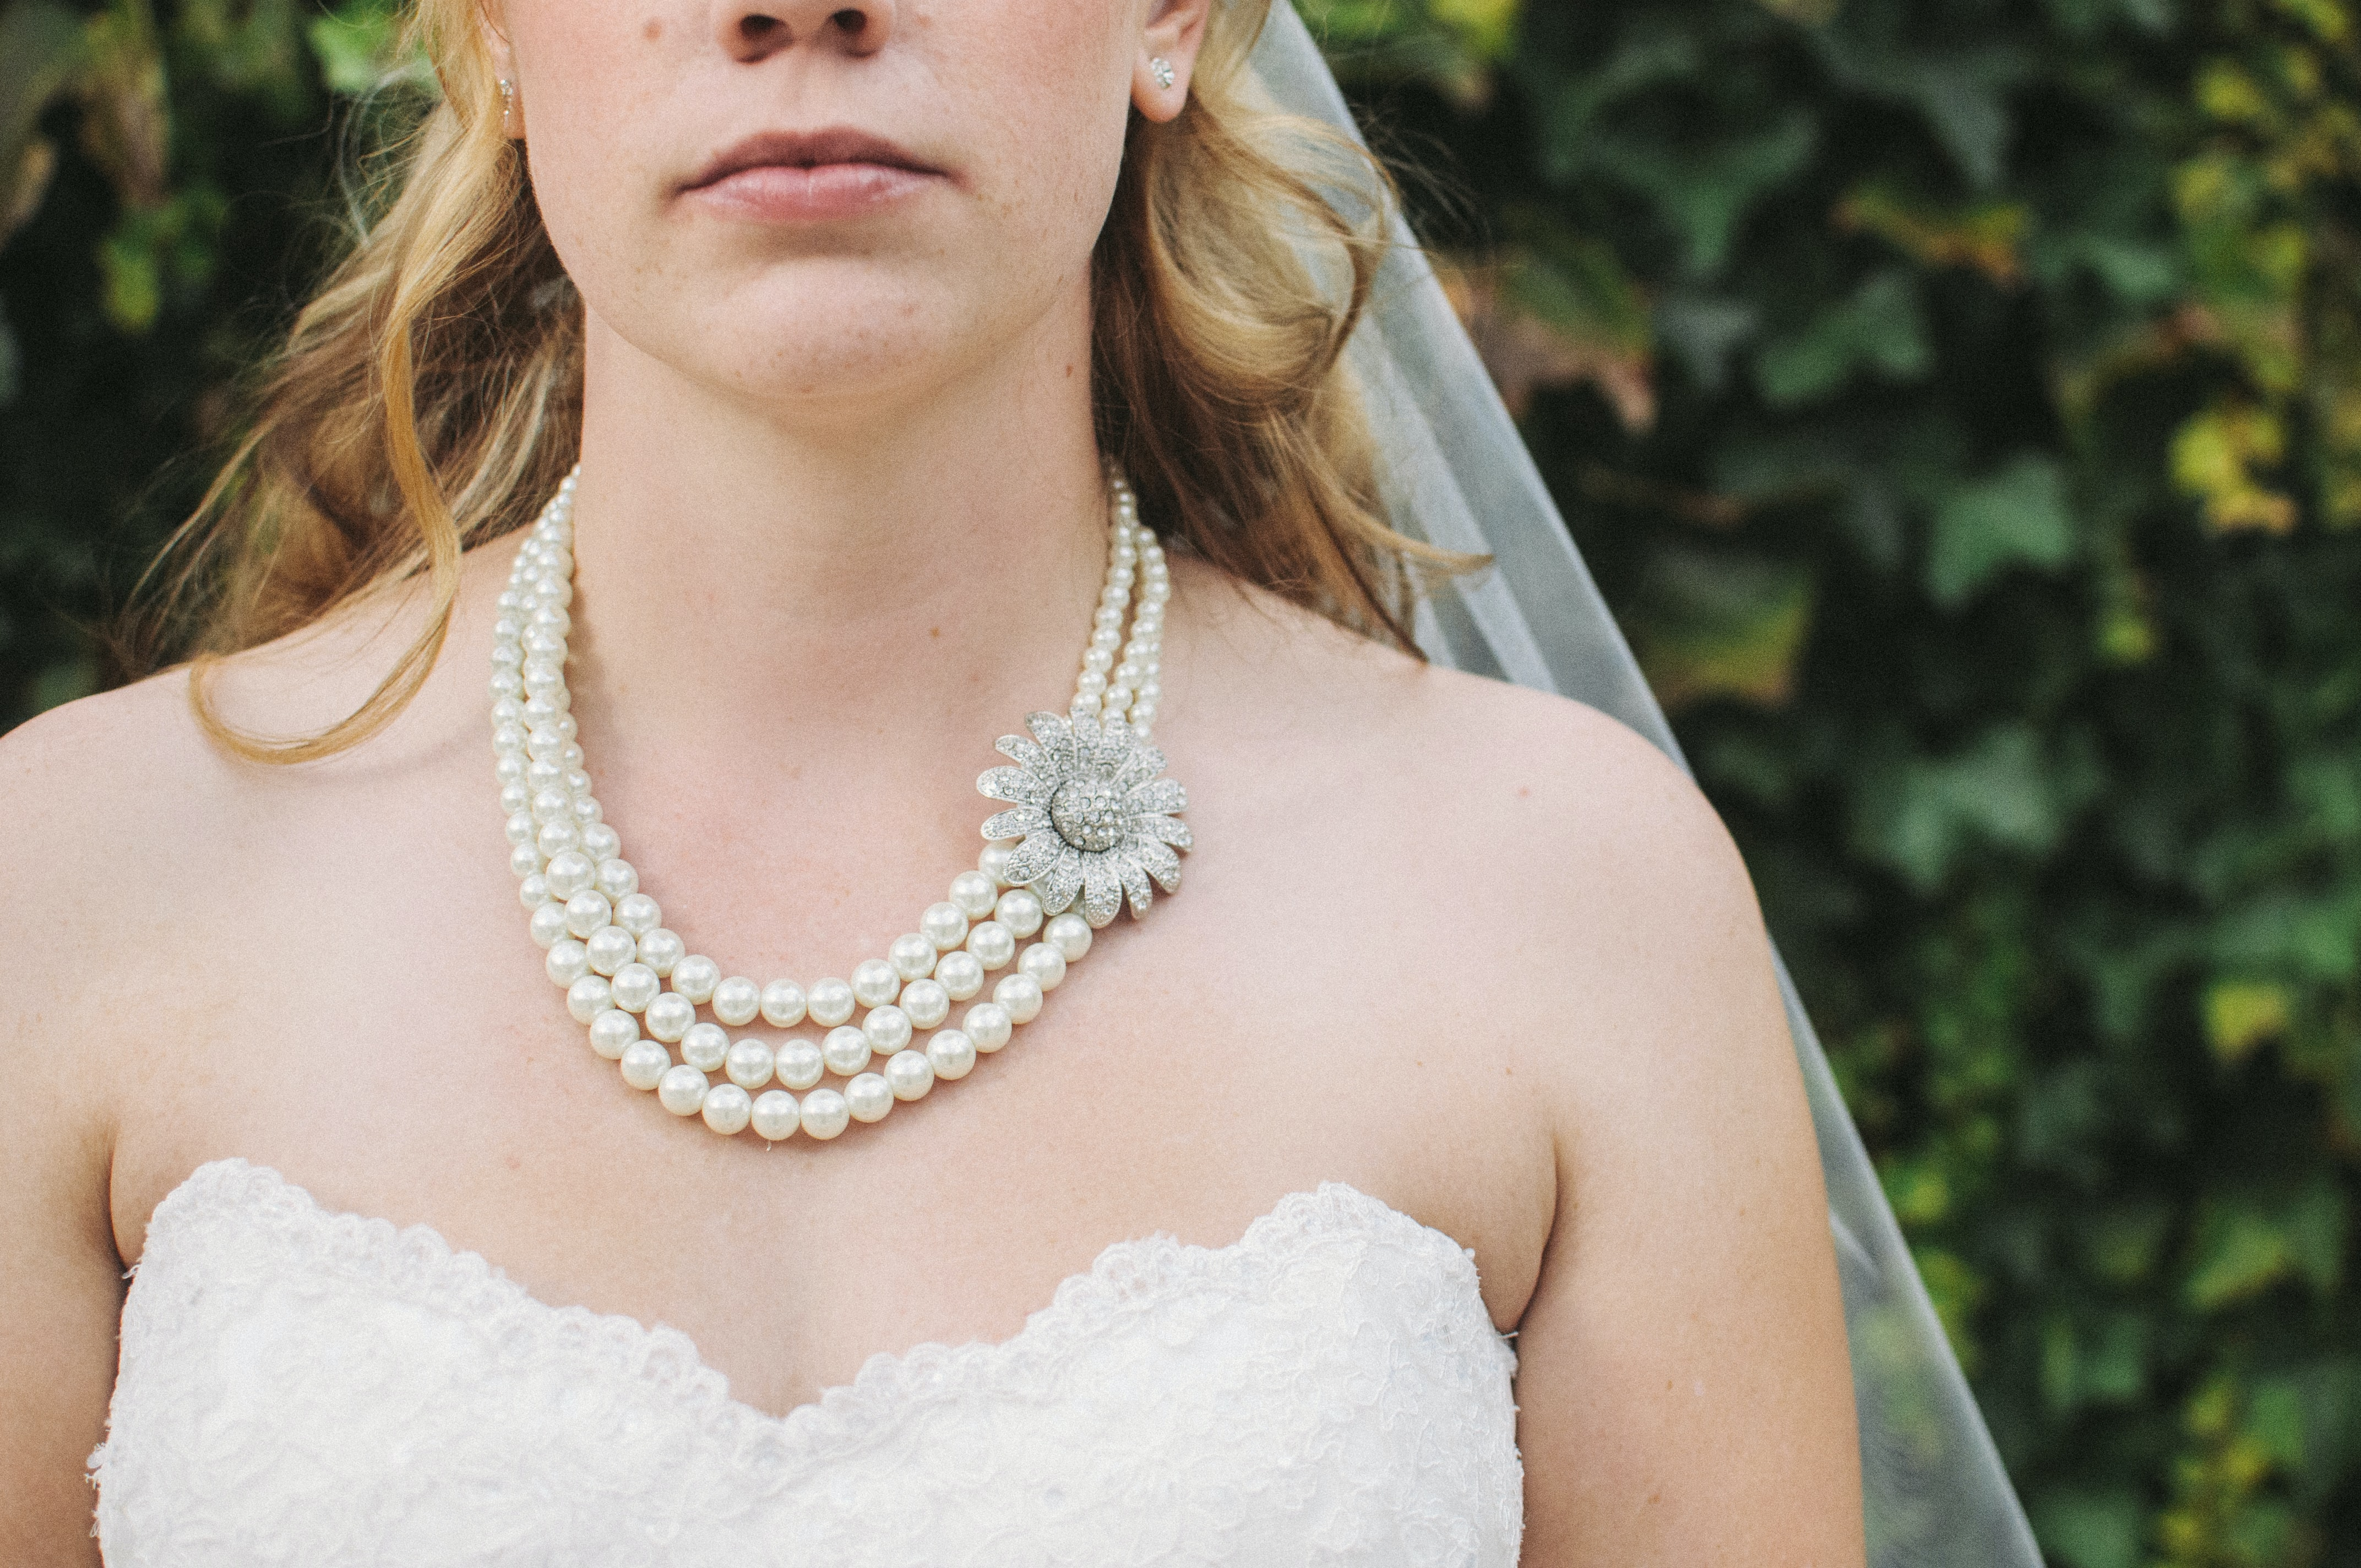 A close-up of a bride's chest, showing her wedding dress, veil, and pearl necklace